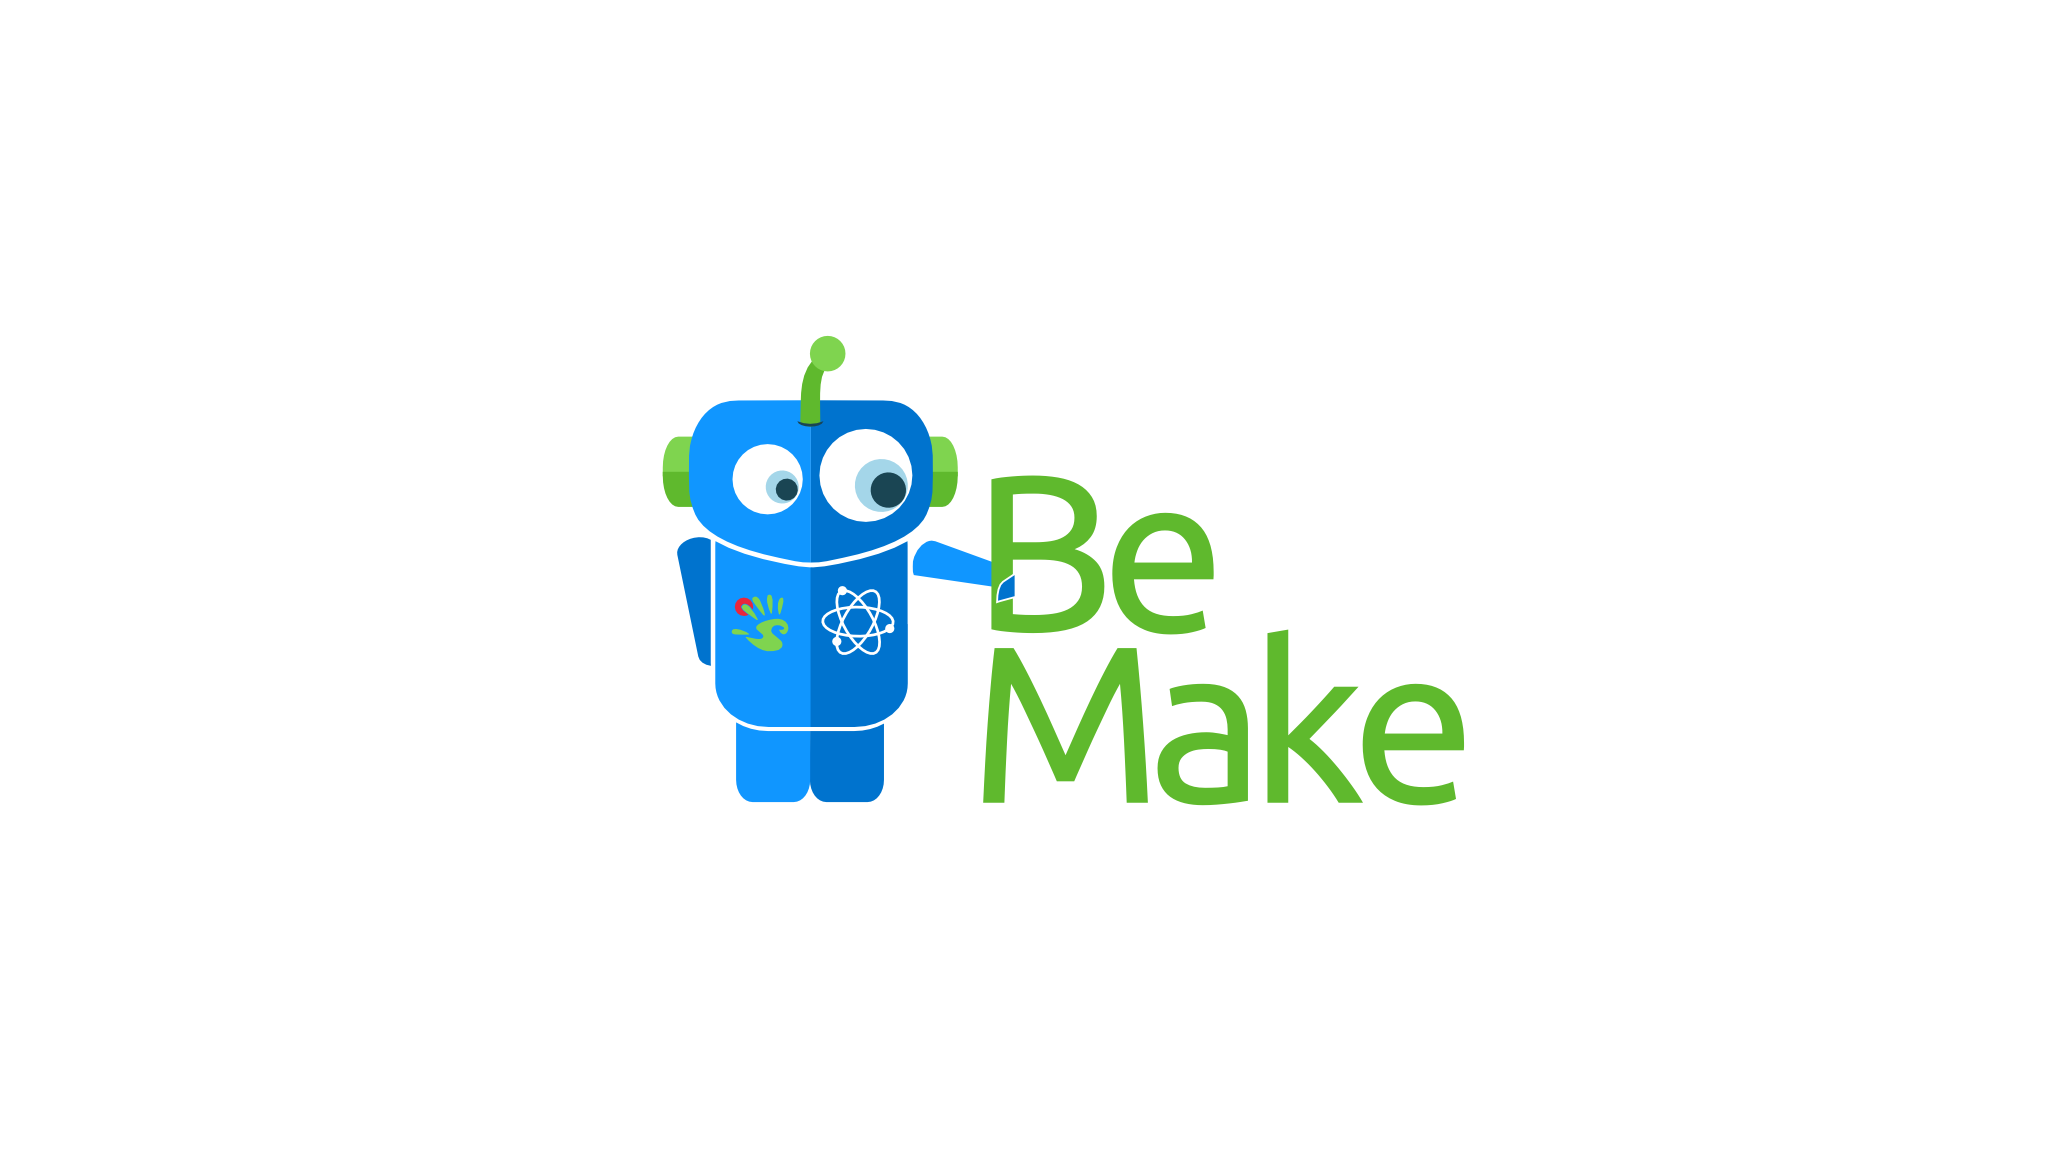 Create a new brand logo for a science and math educational company